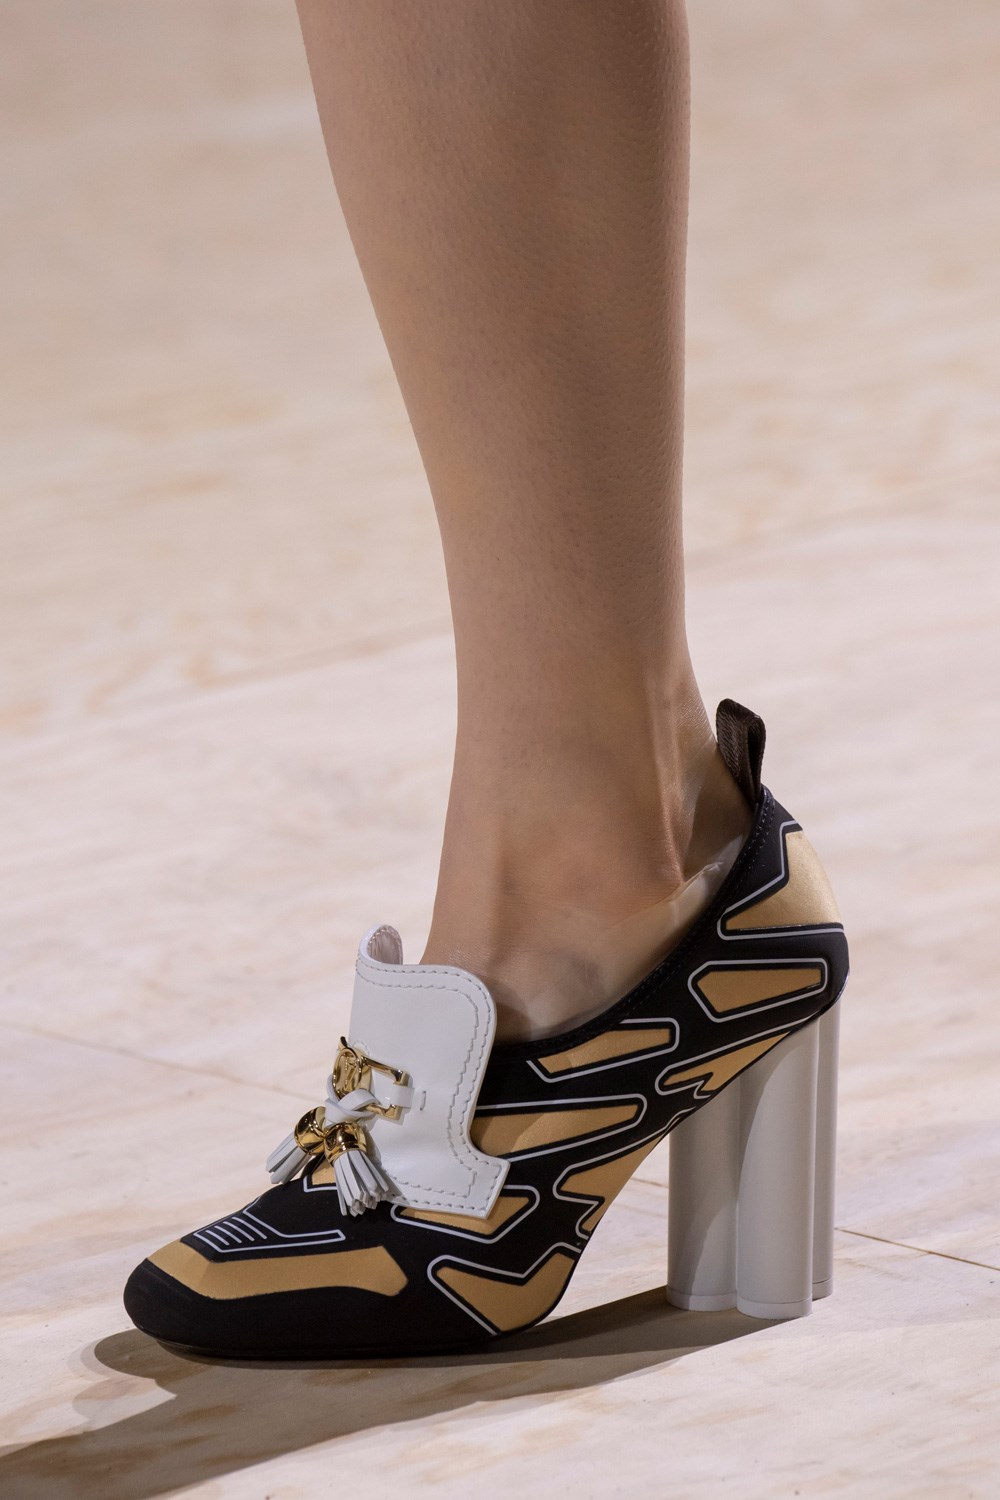 Louis Vuitton Spring 2020 Fashion Show Details